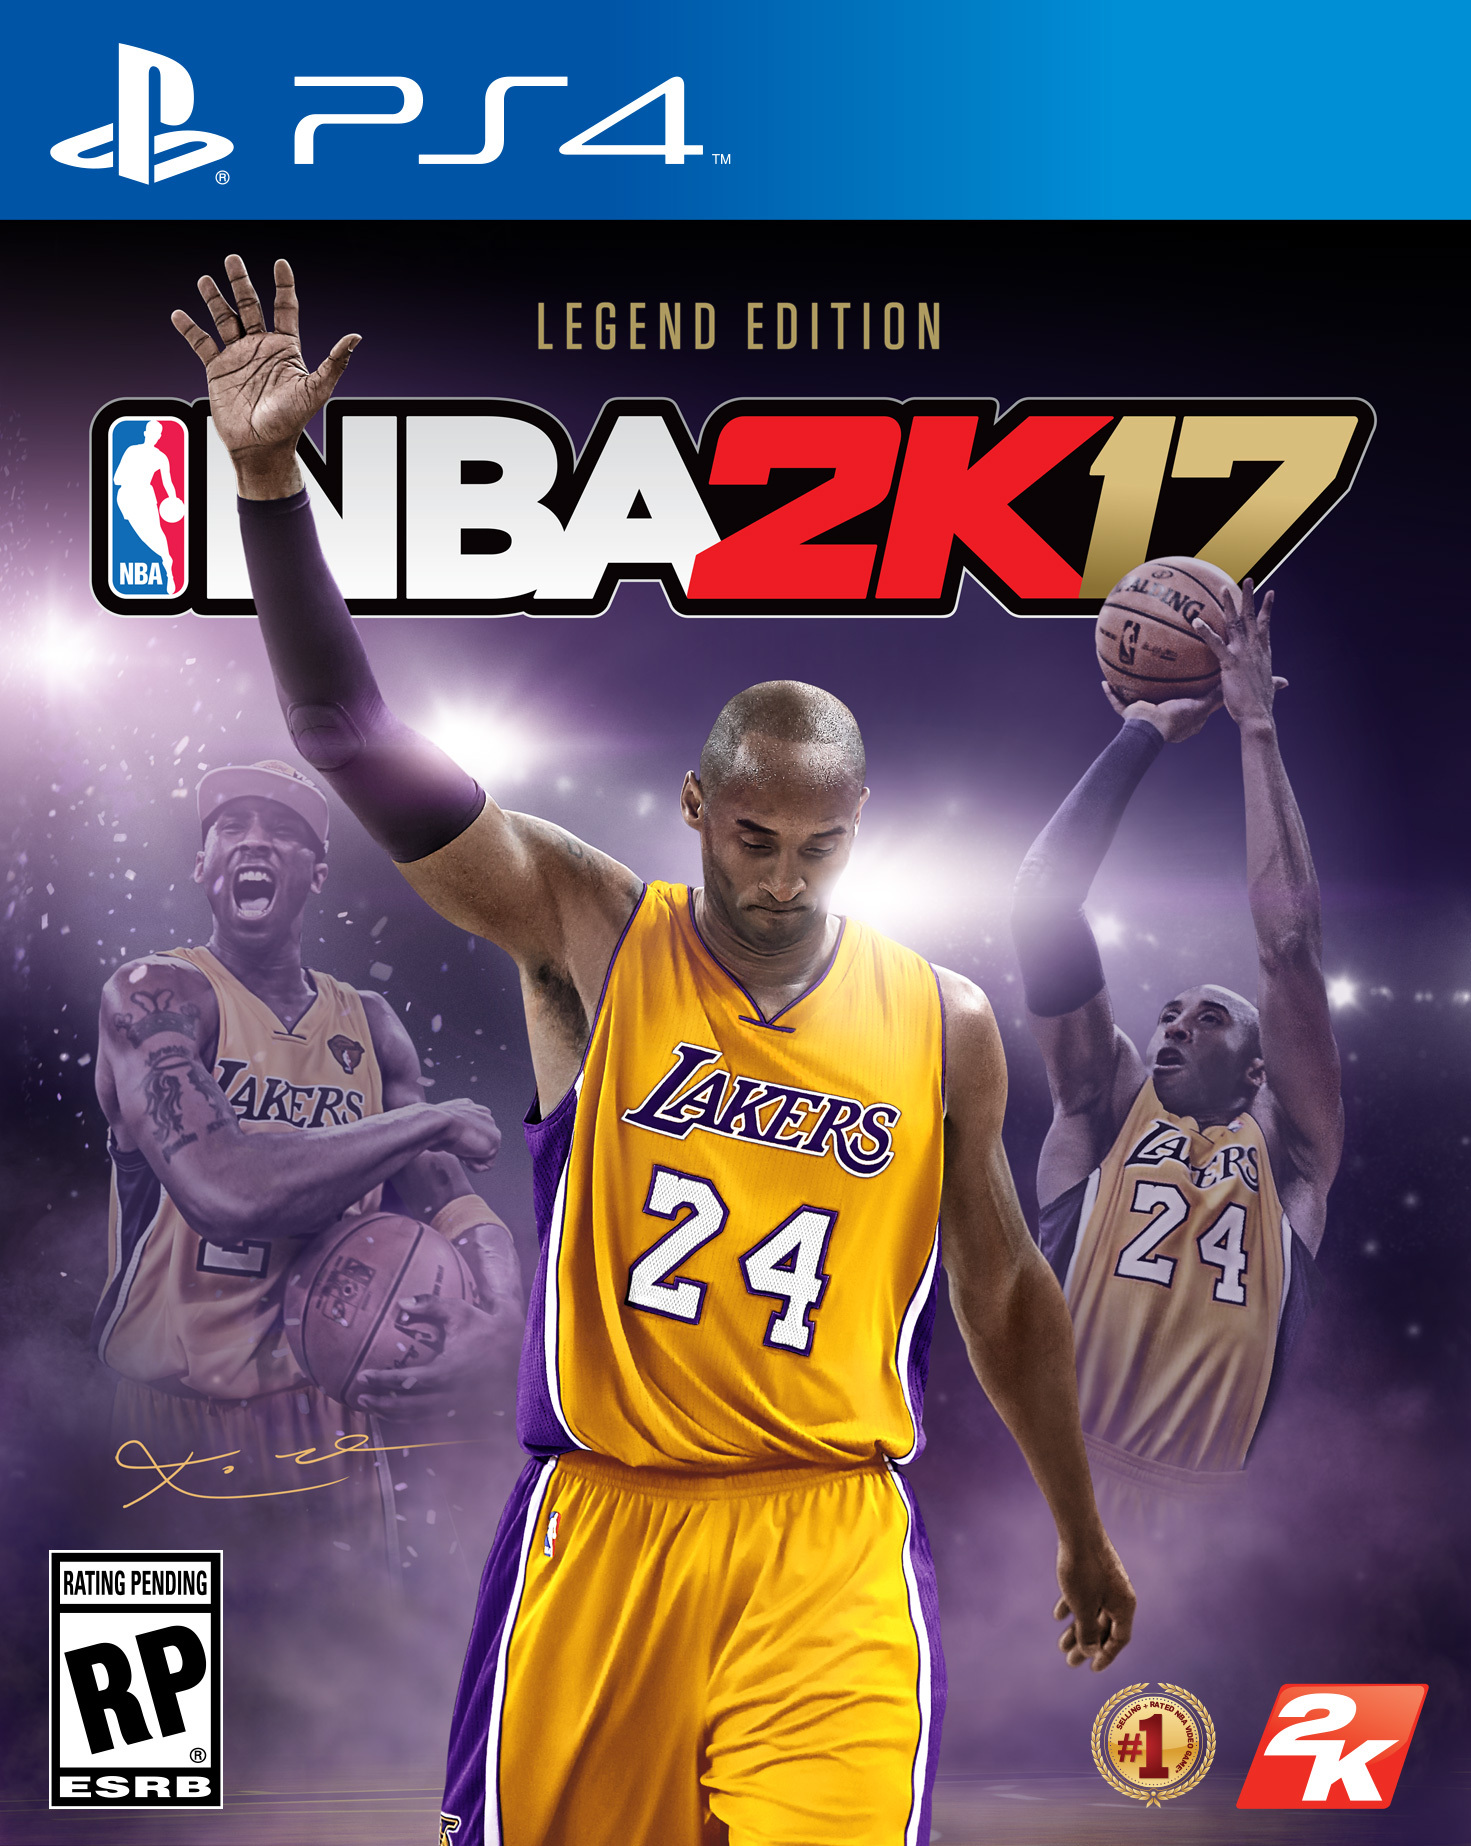 How to Play as Kobe Bryant In